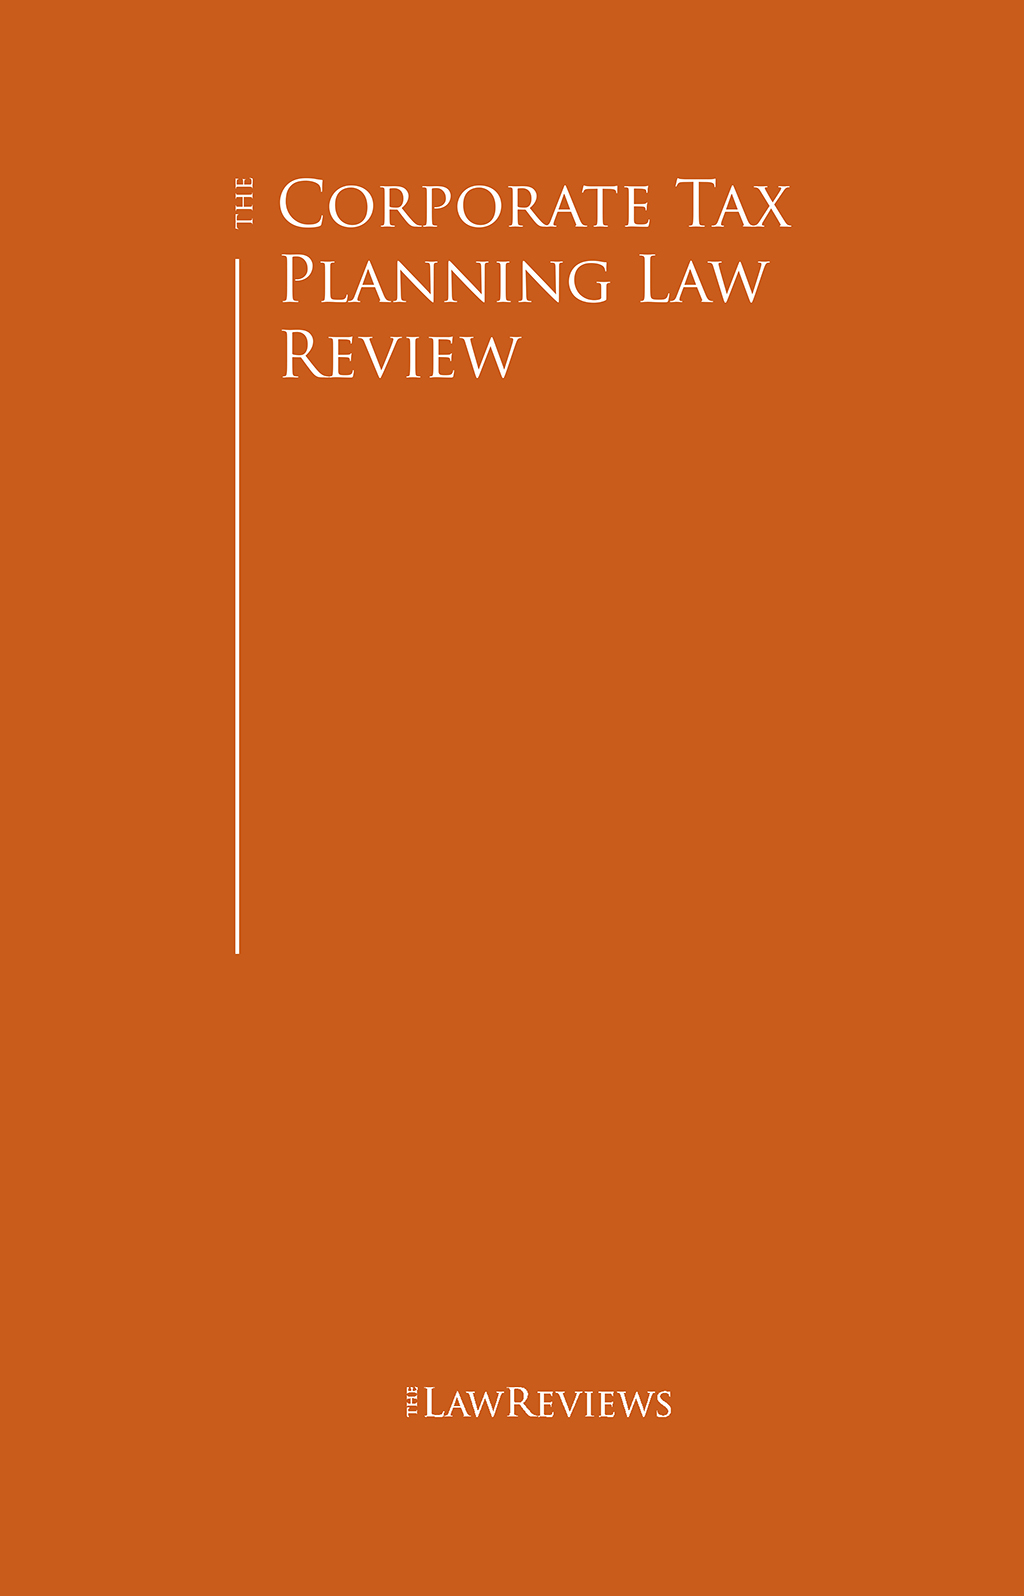 The Corporate Tax Planning Law Review